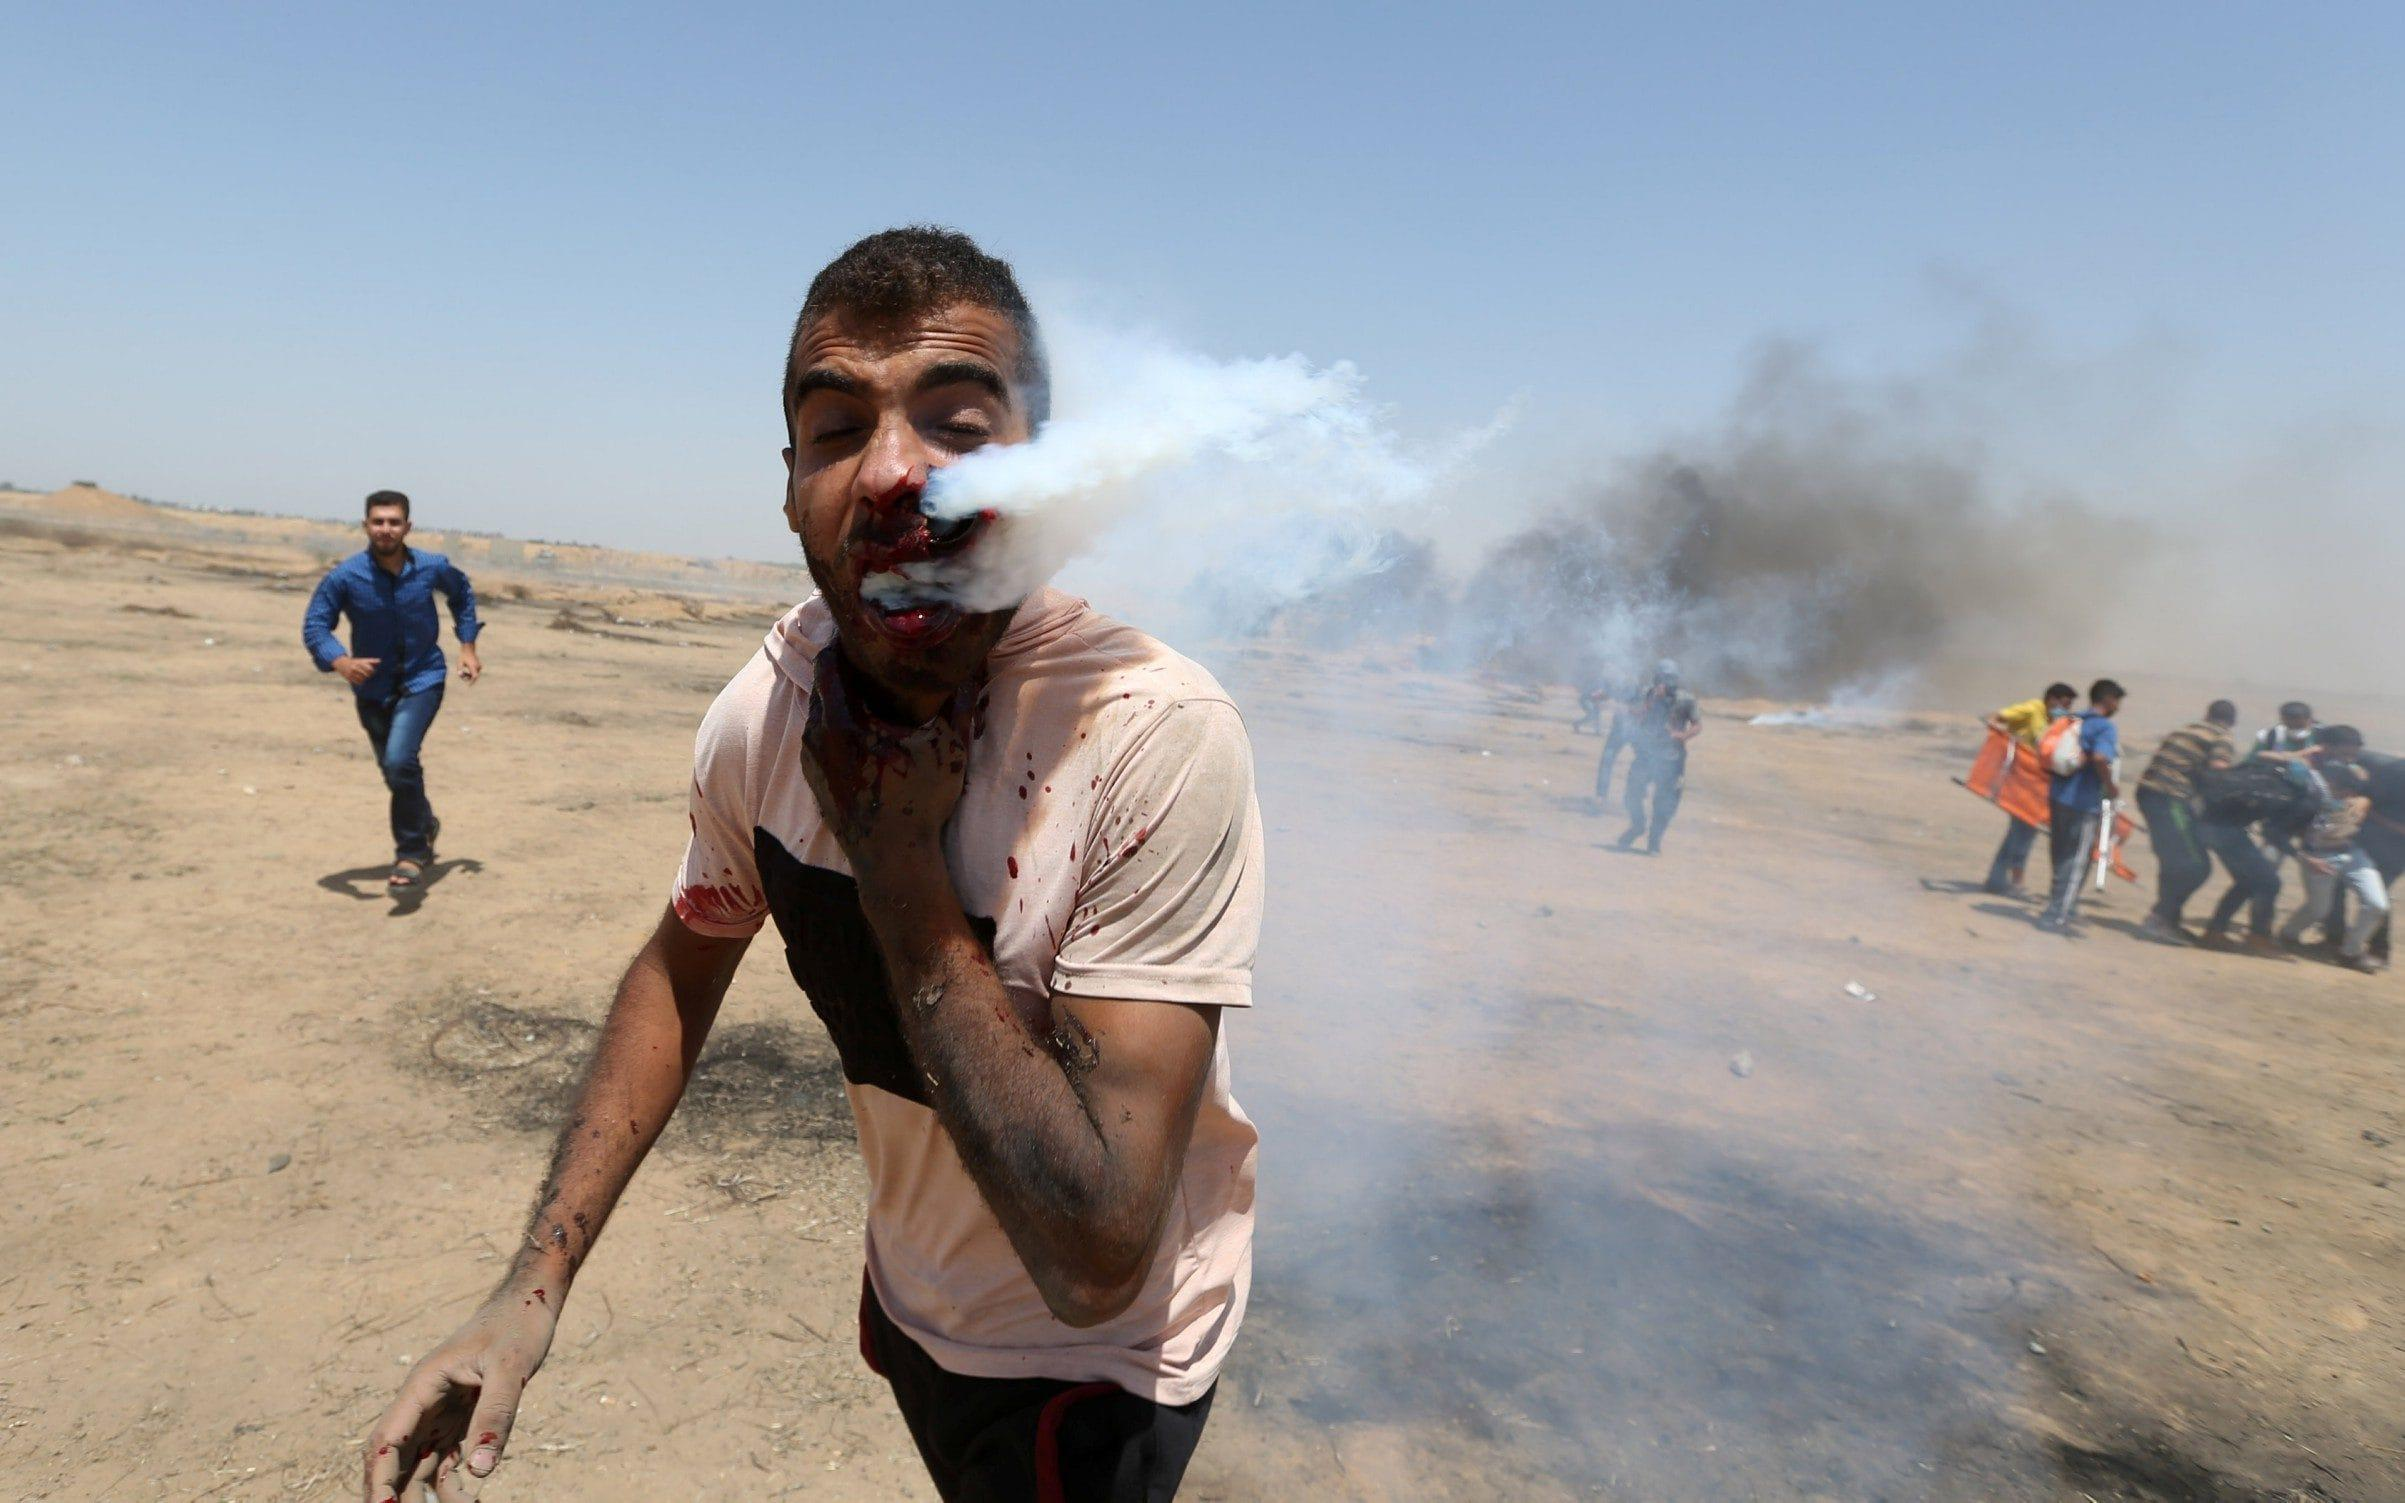 Palestinian protester hit in face by tear gas canister fired by Israeli soldier in Gaza protests